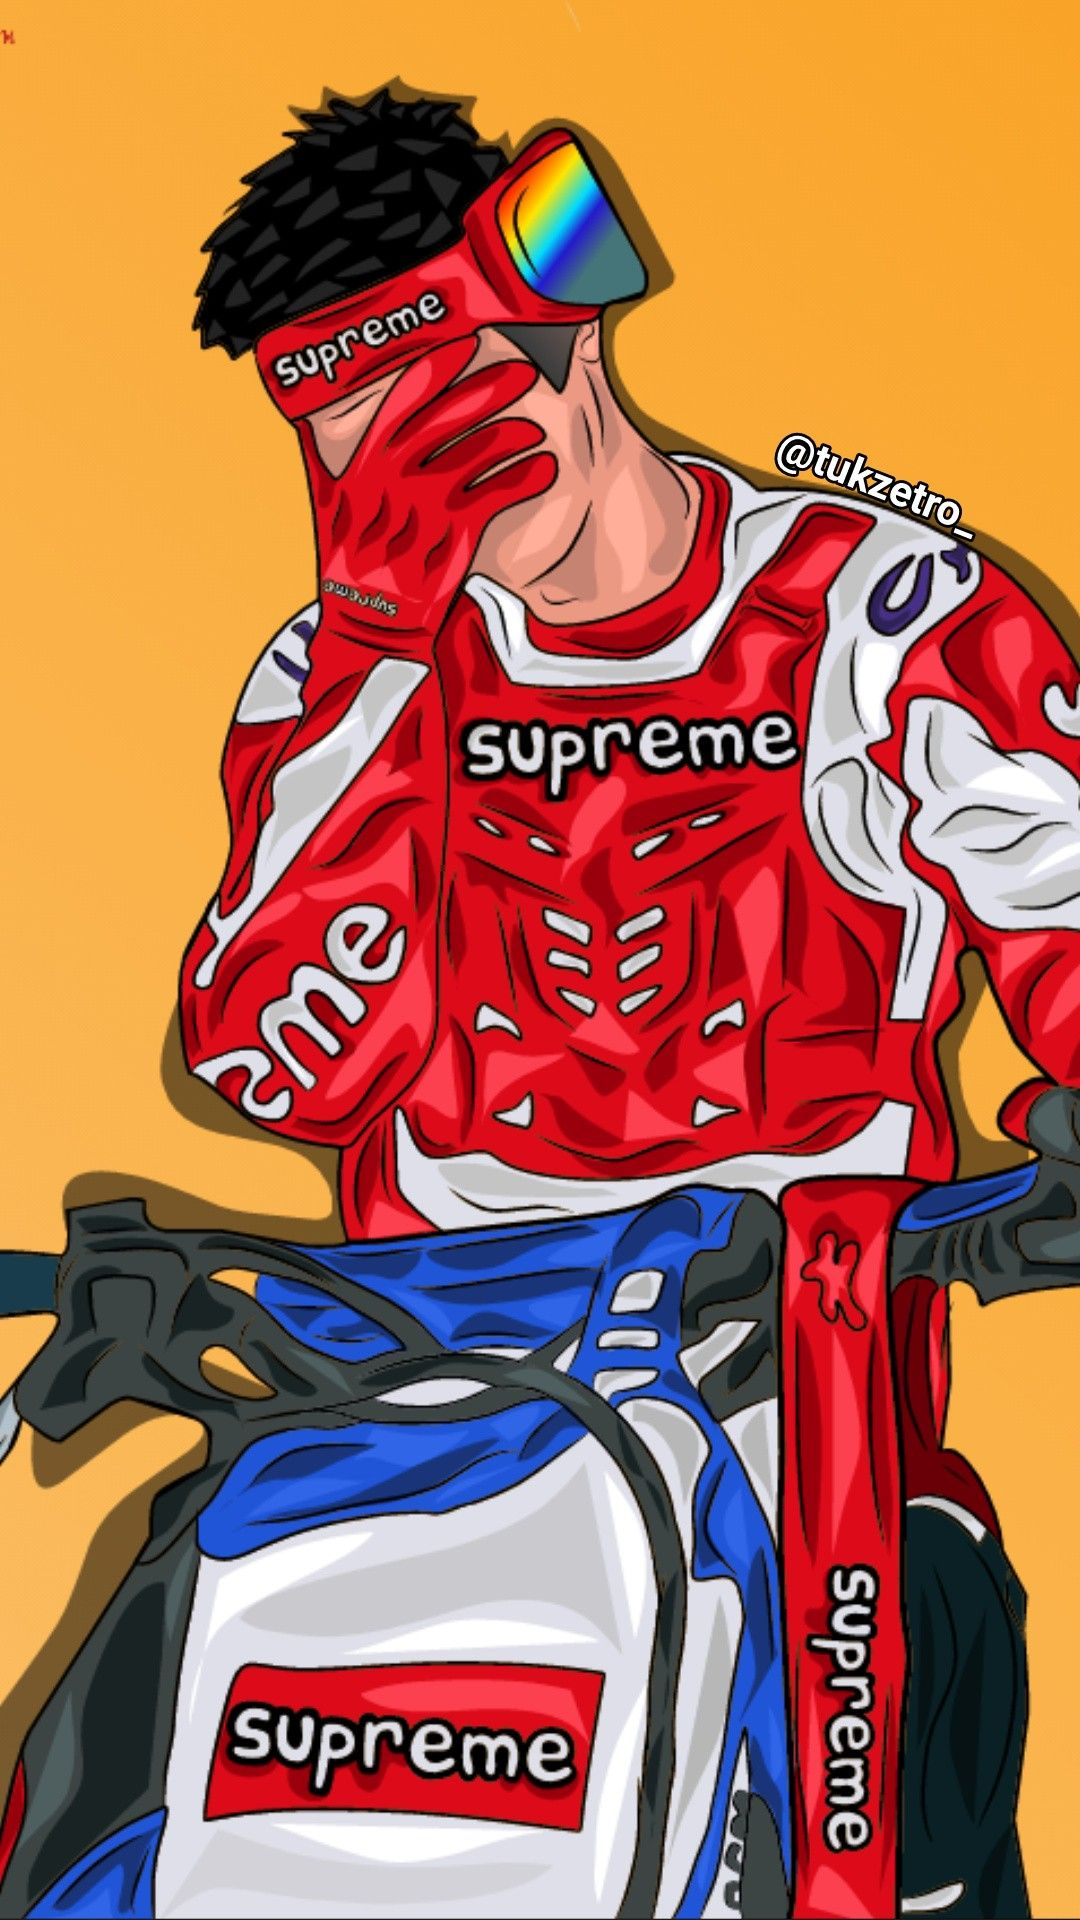 Pin by A Hernandez on Supreme iphone wallpaper in 2020